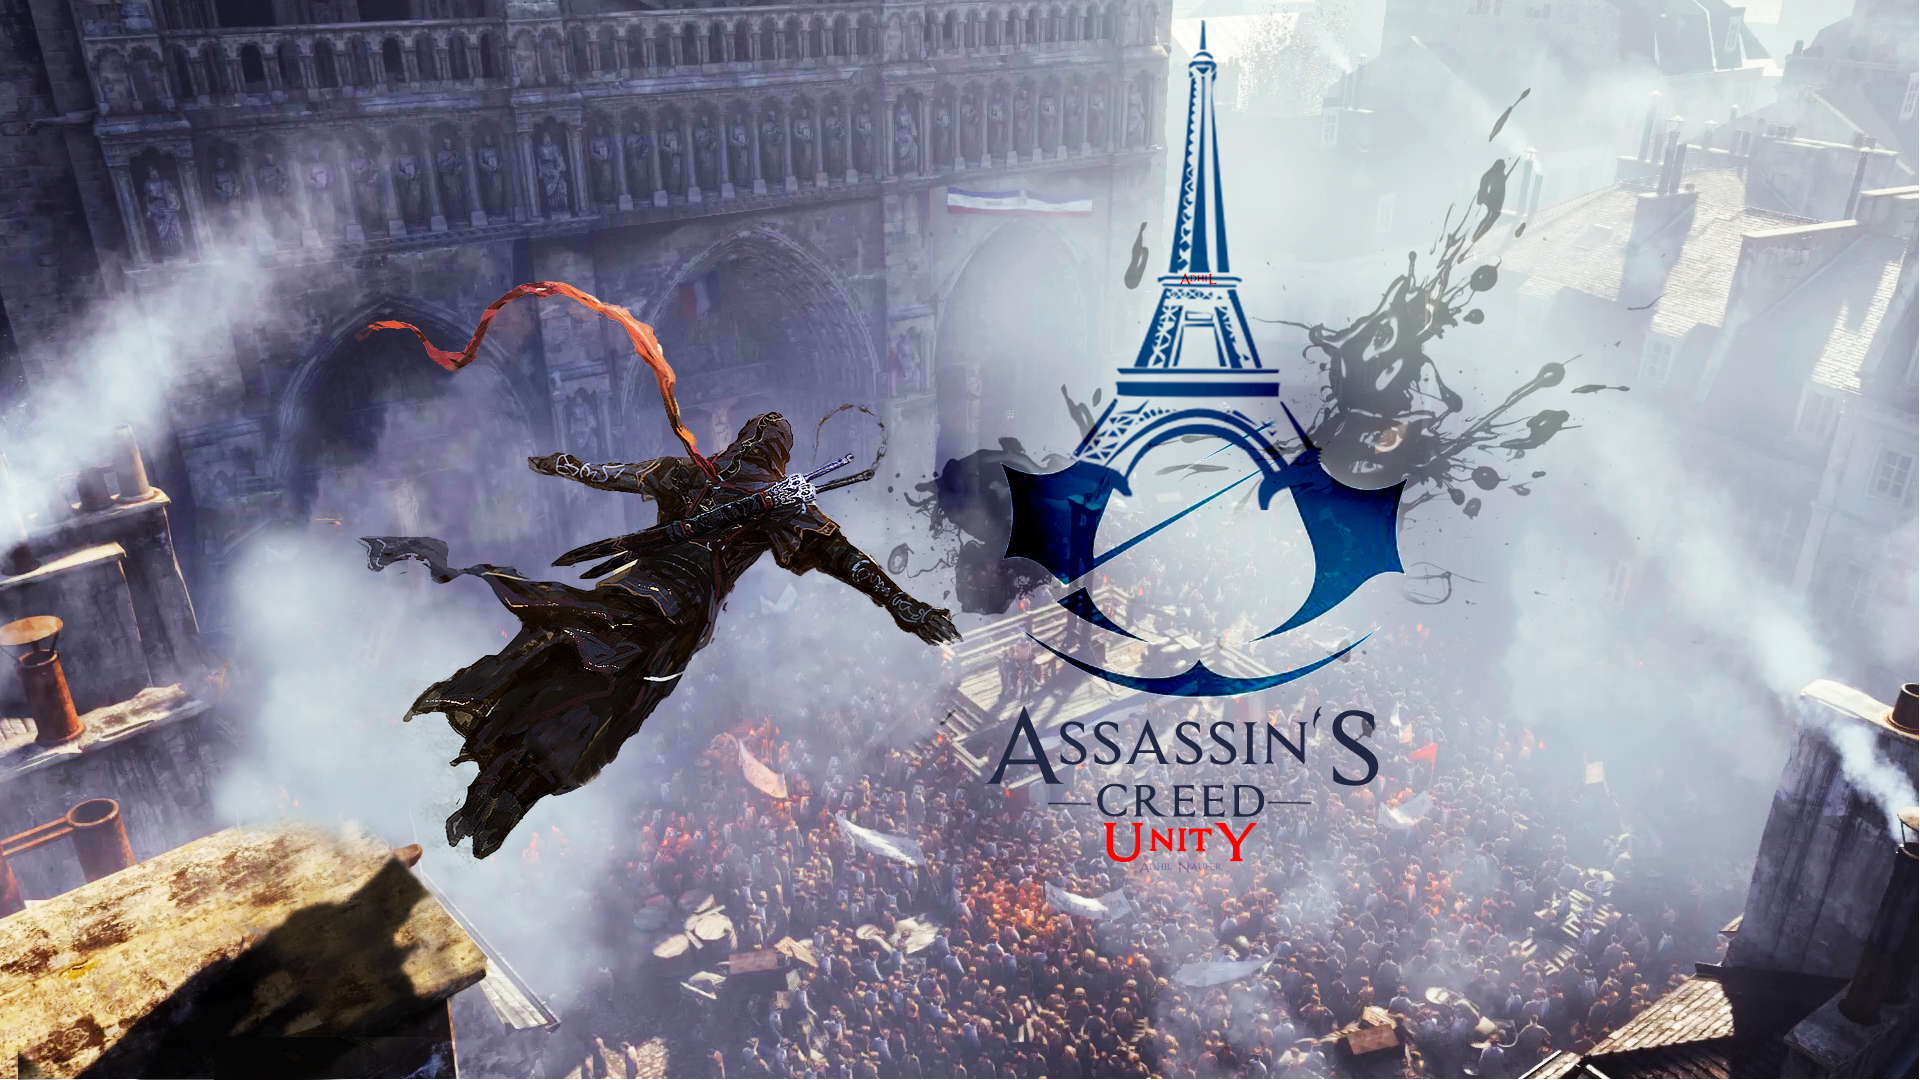 Assassin's Creed untiy